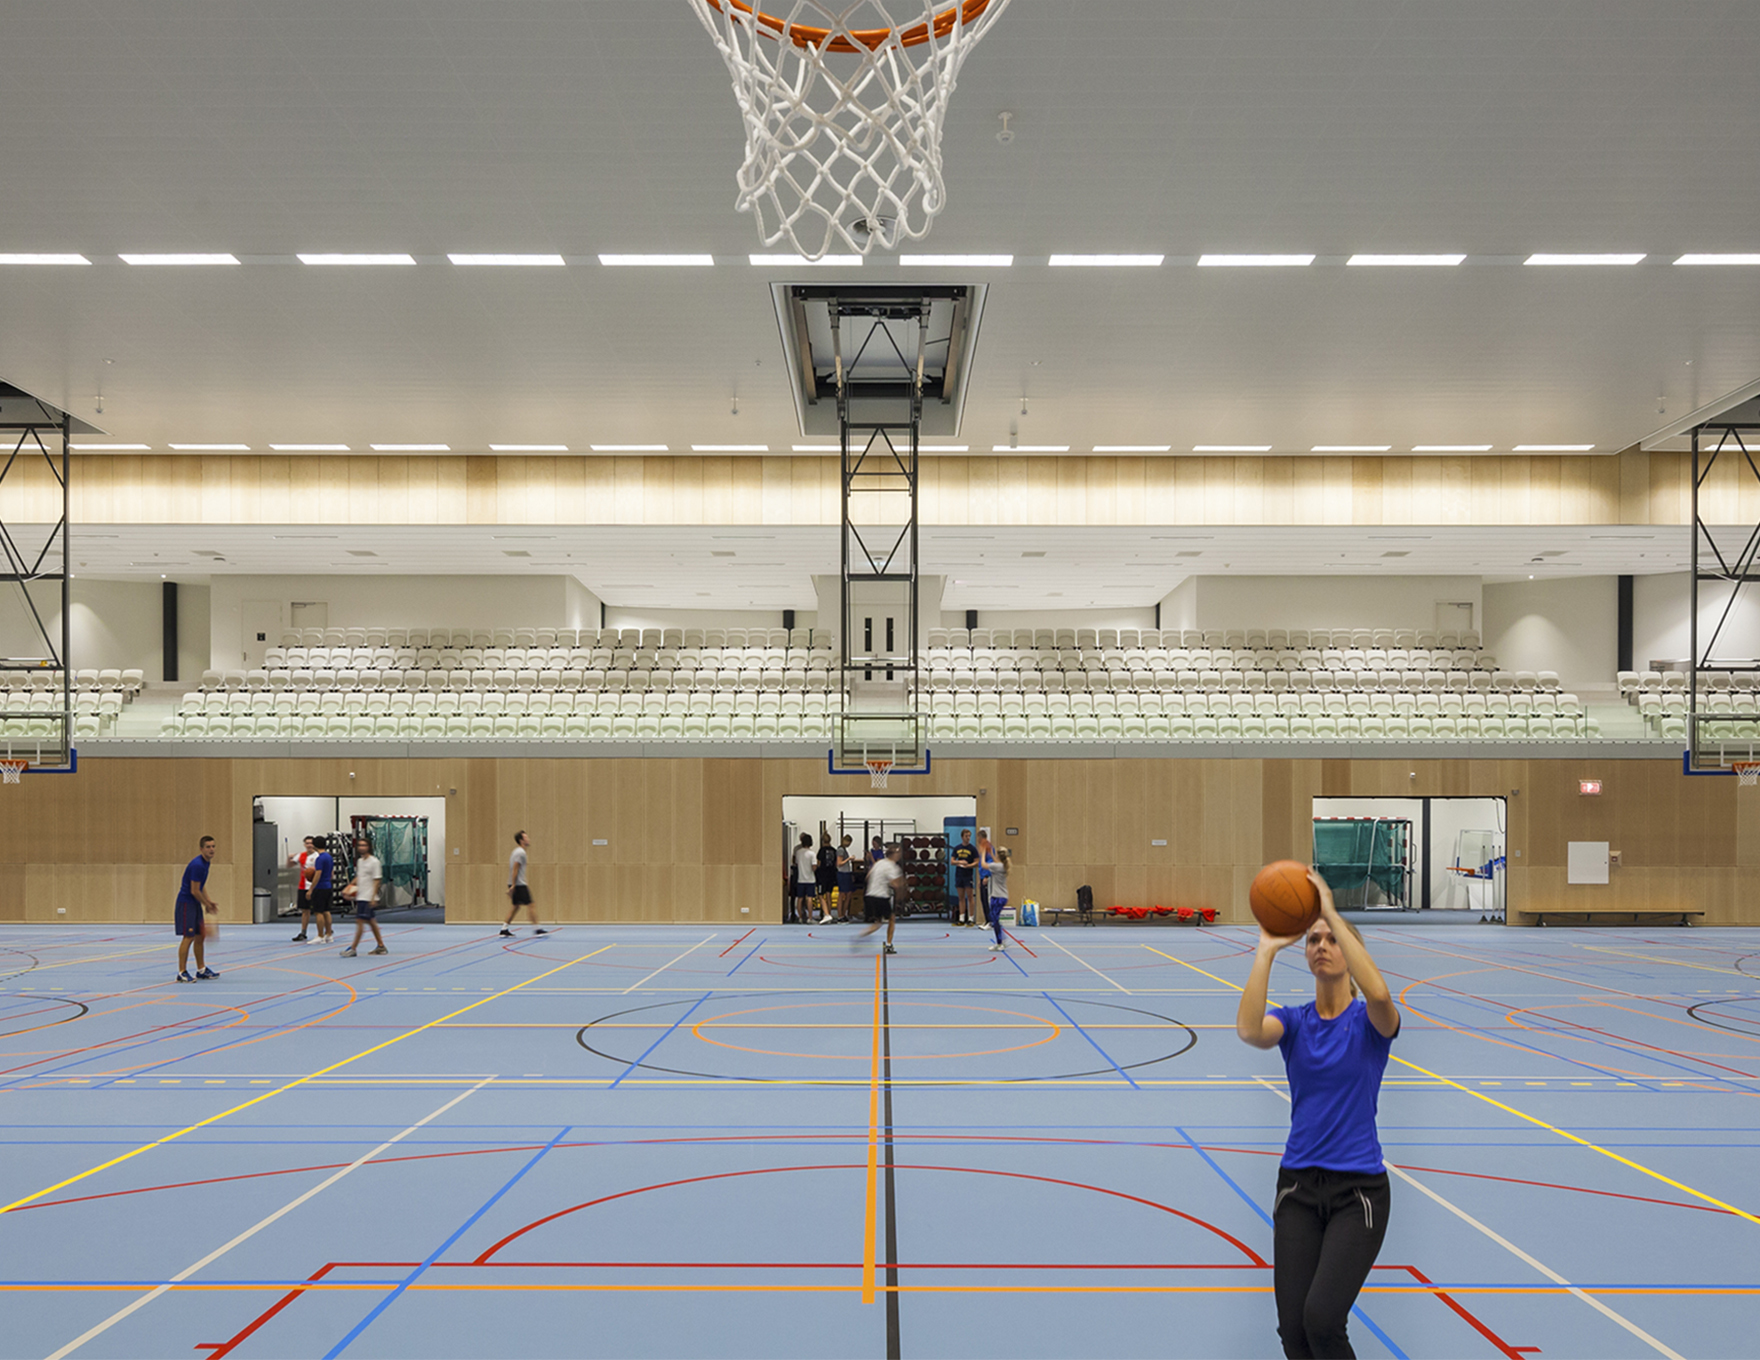 Community Leisure Expertise Sportcampus Zuiderpark Sports Hall Basketball L